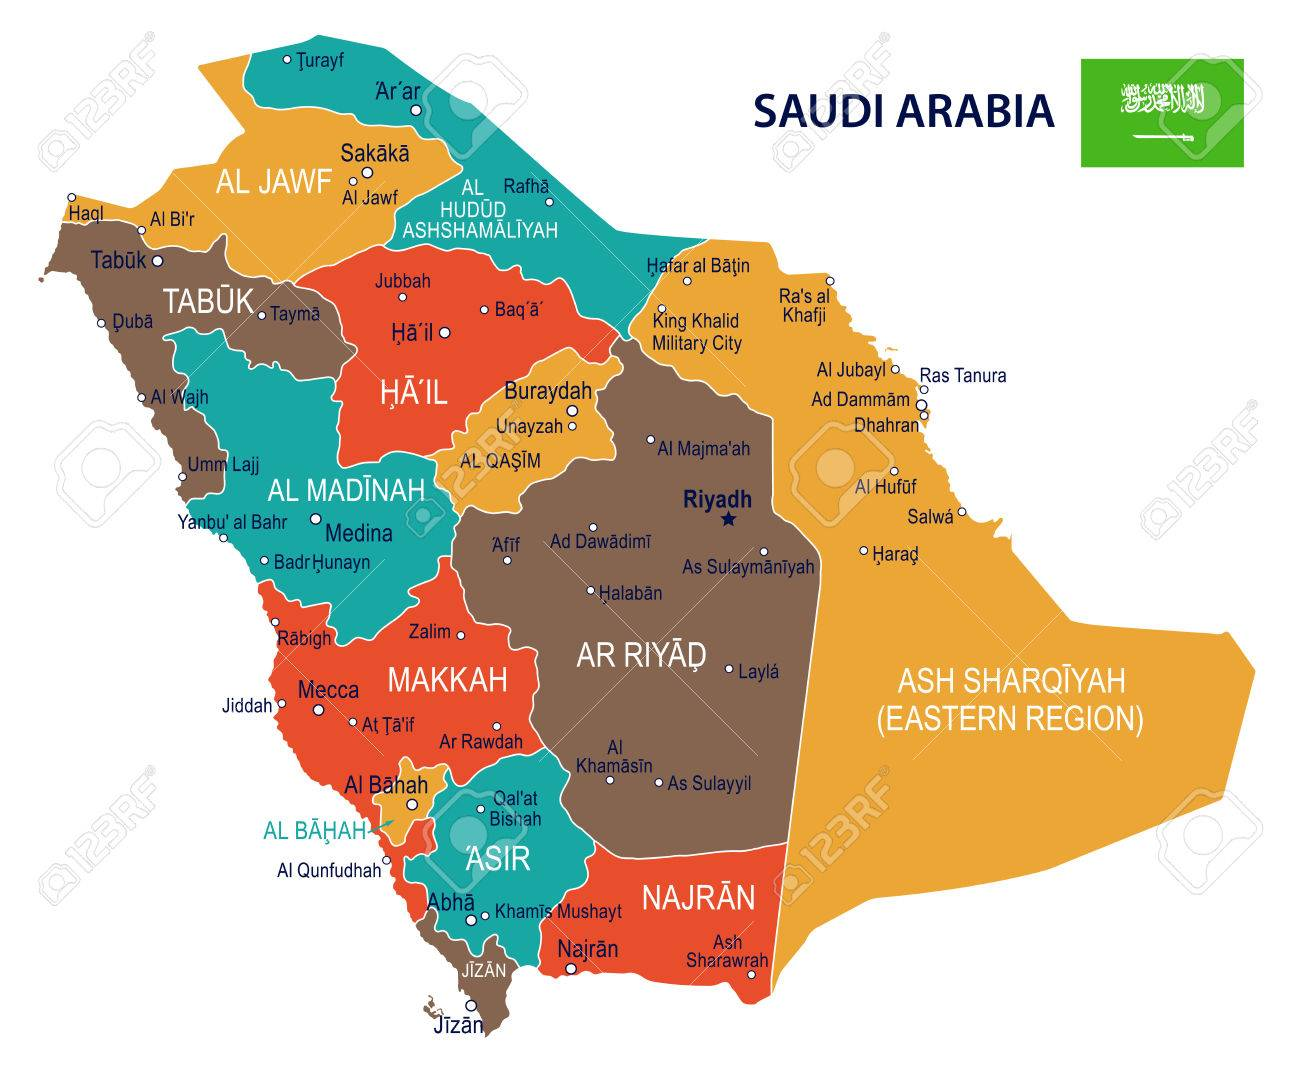 Saudi Arabia Map And Flag Vector Illustration Royalty Free